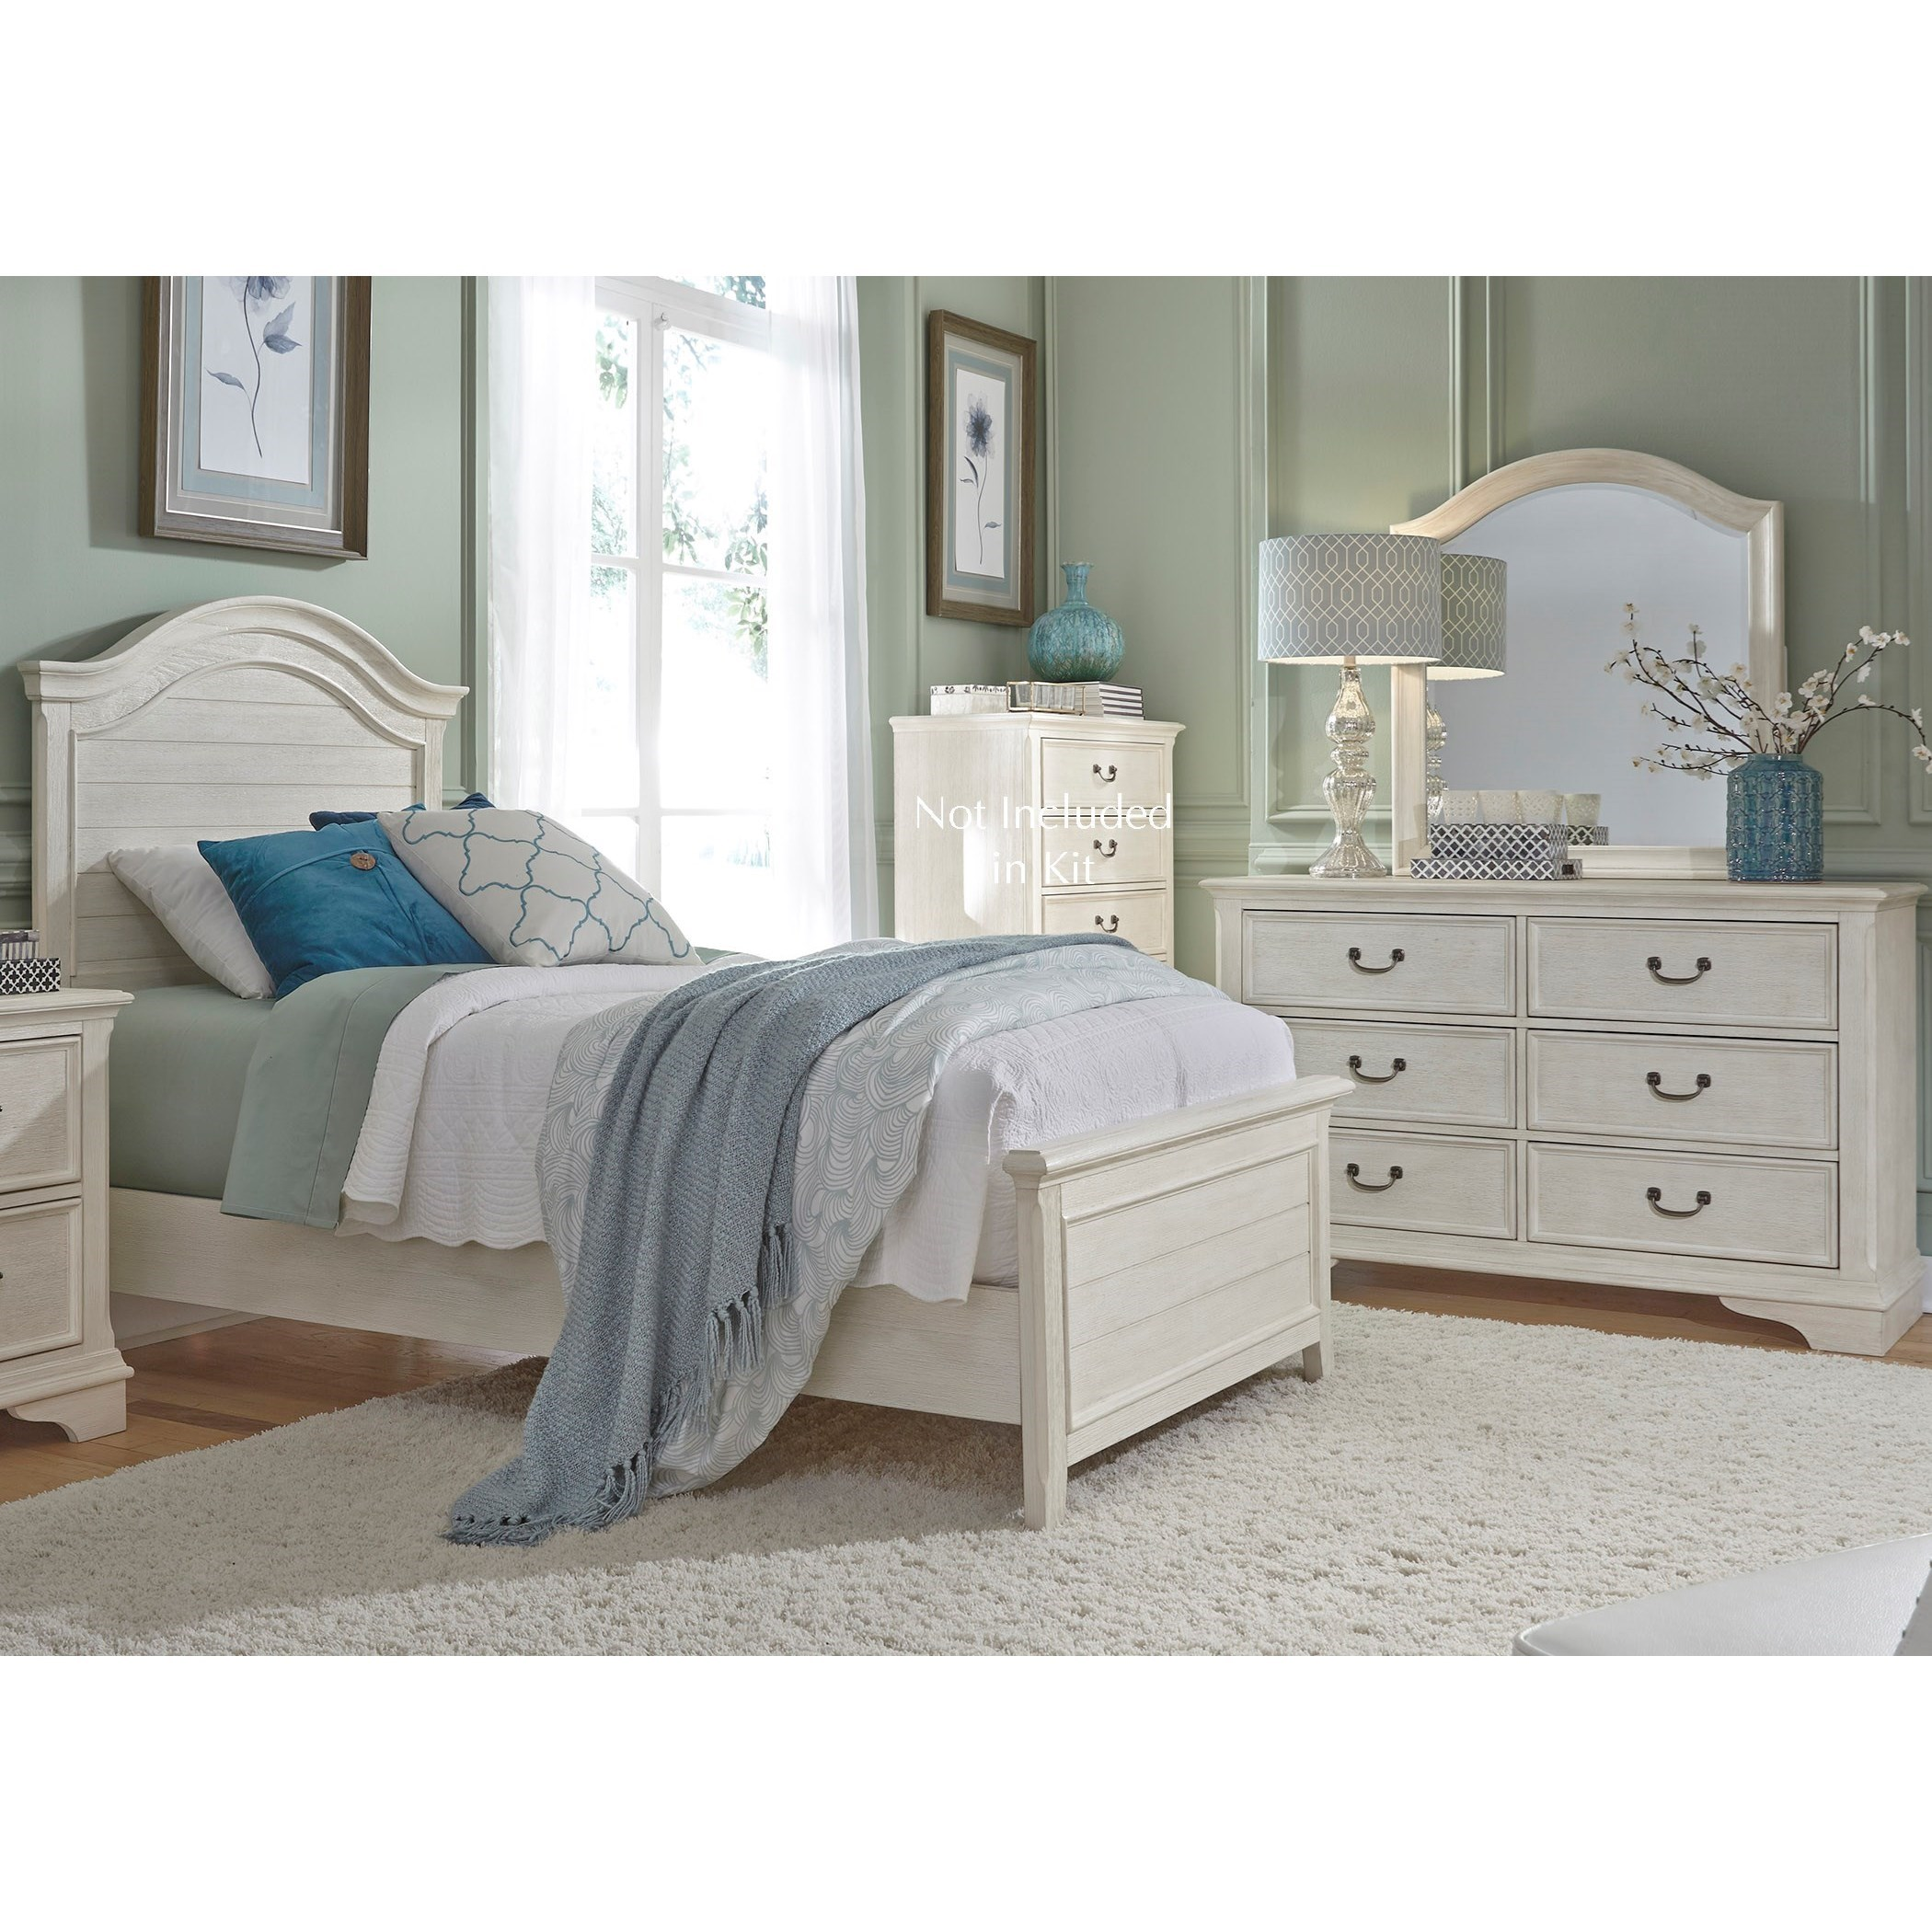 Bayside Bedroom Full Bedroom Group by Liberty Furniture at Northeast Factory Direct